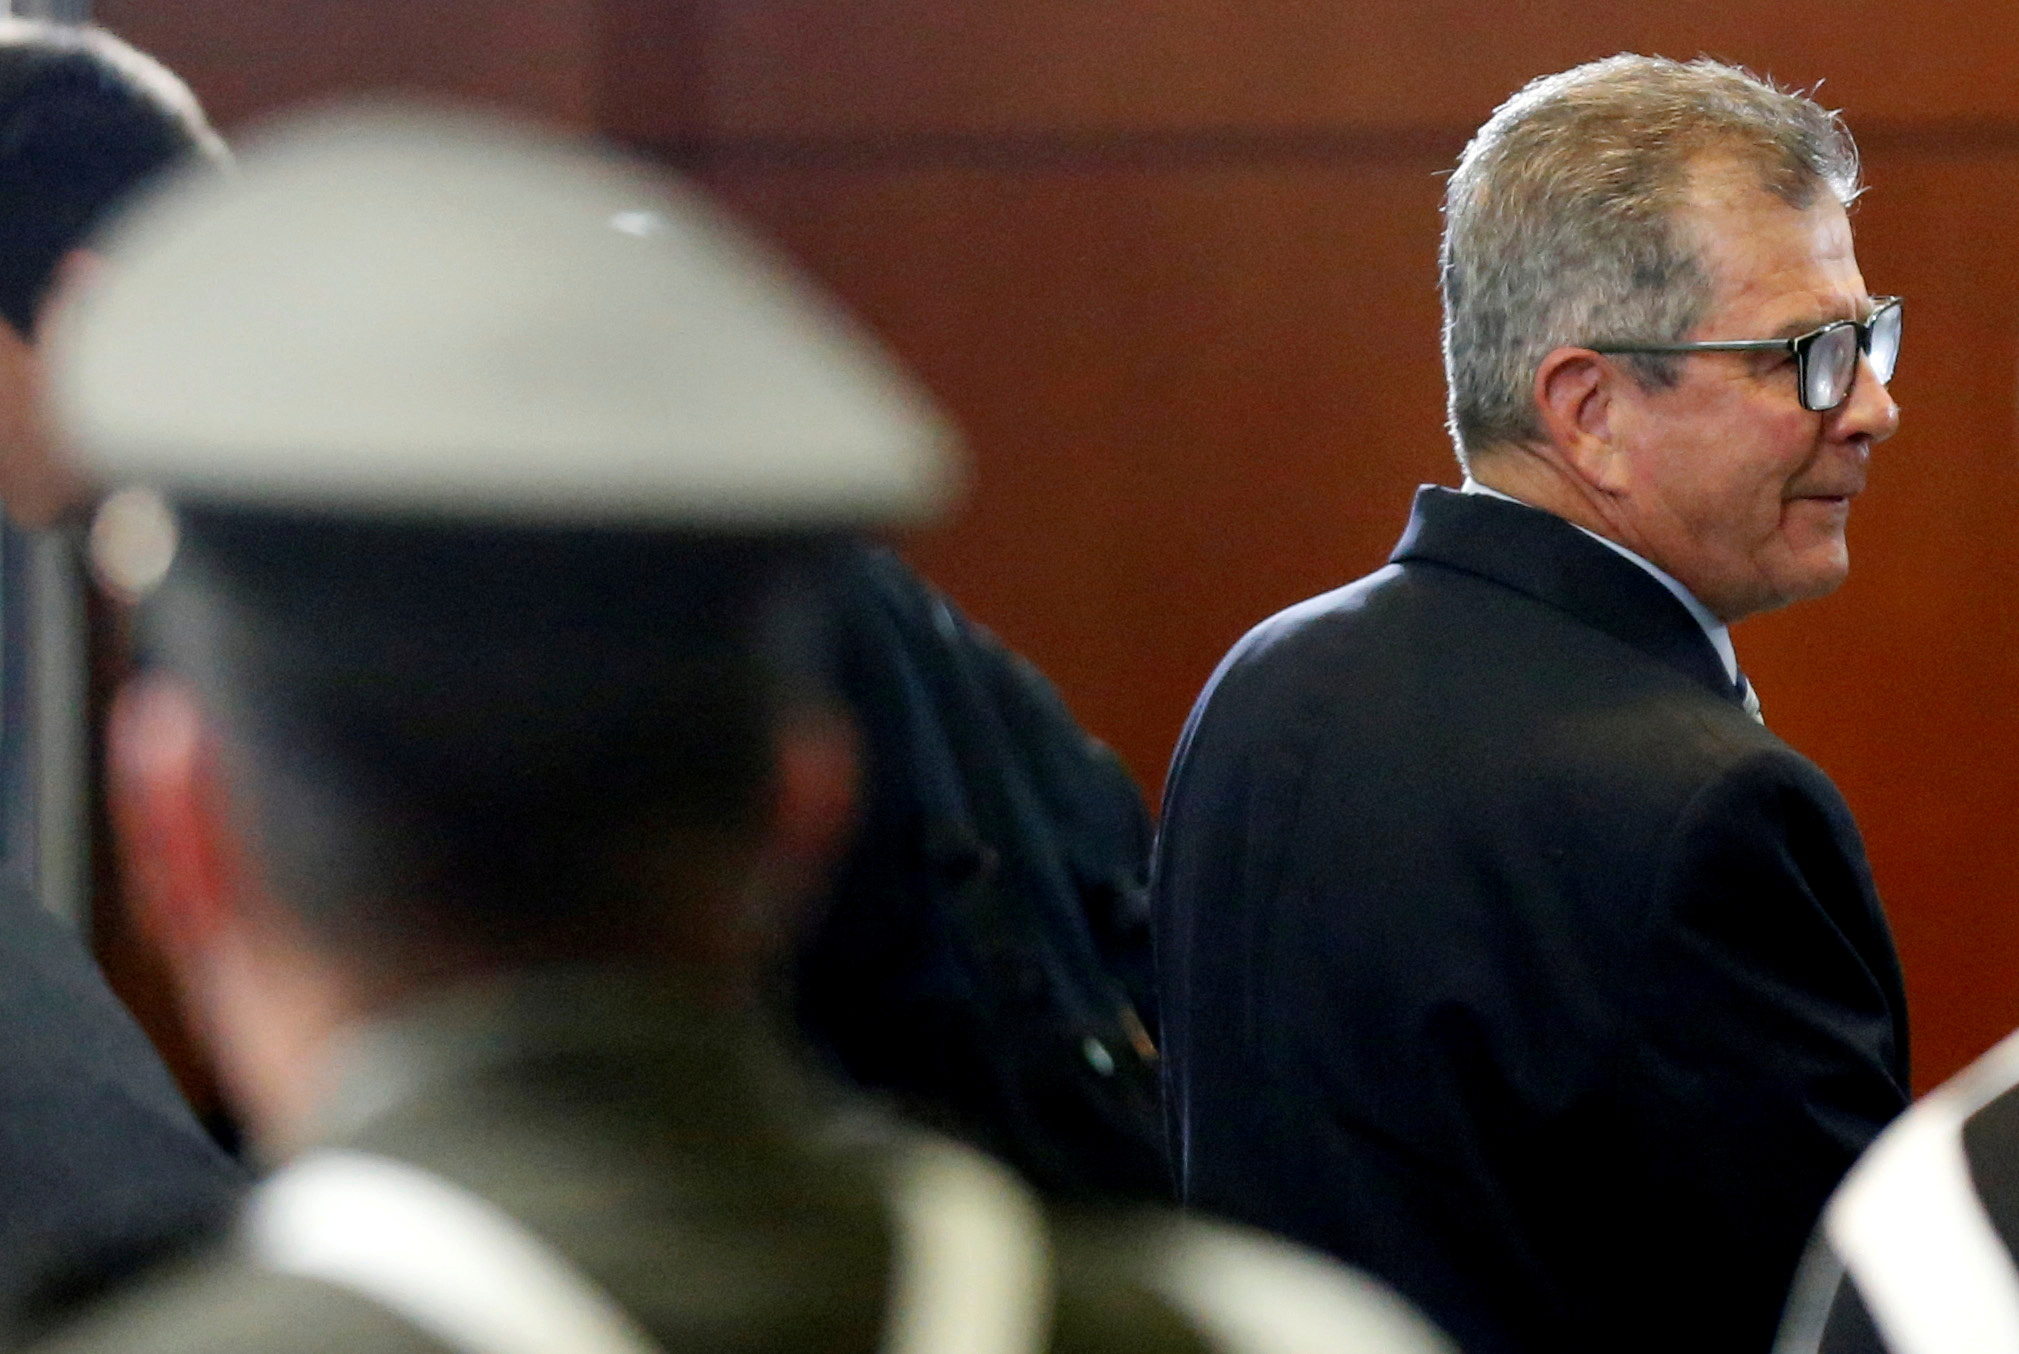 Former commander of the Colombian Army General Mario Montoya attends a hearing at the Special Jurisdiction for Peace (JEP) court in Bogota, Colombia, September 13, 2018. REUTERS/Luisa Gonzalez/File Photo